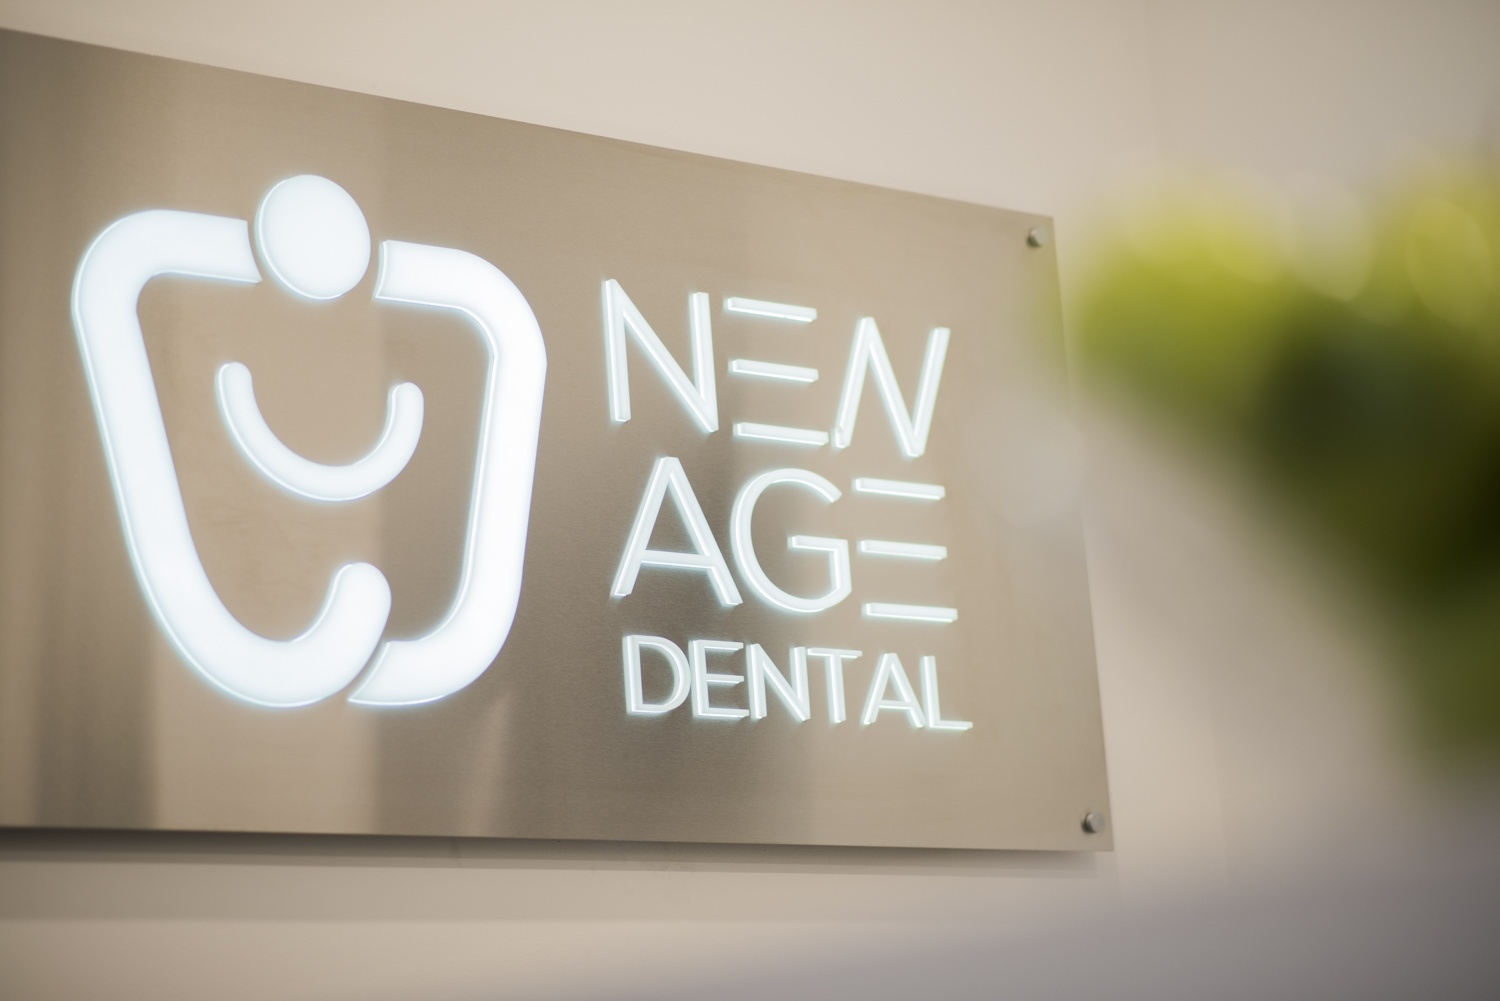 Bundoora Cosmetic Dentist